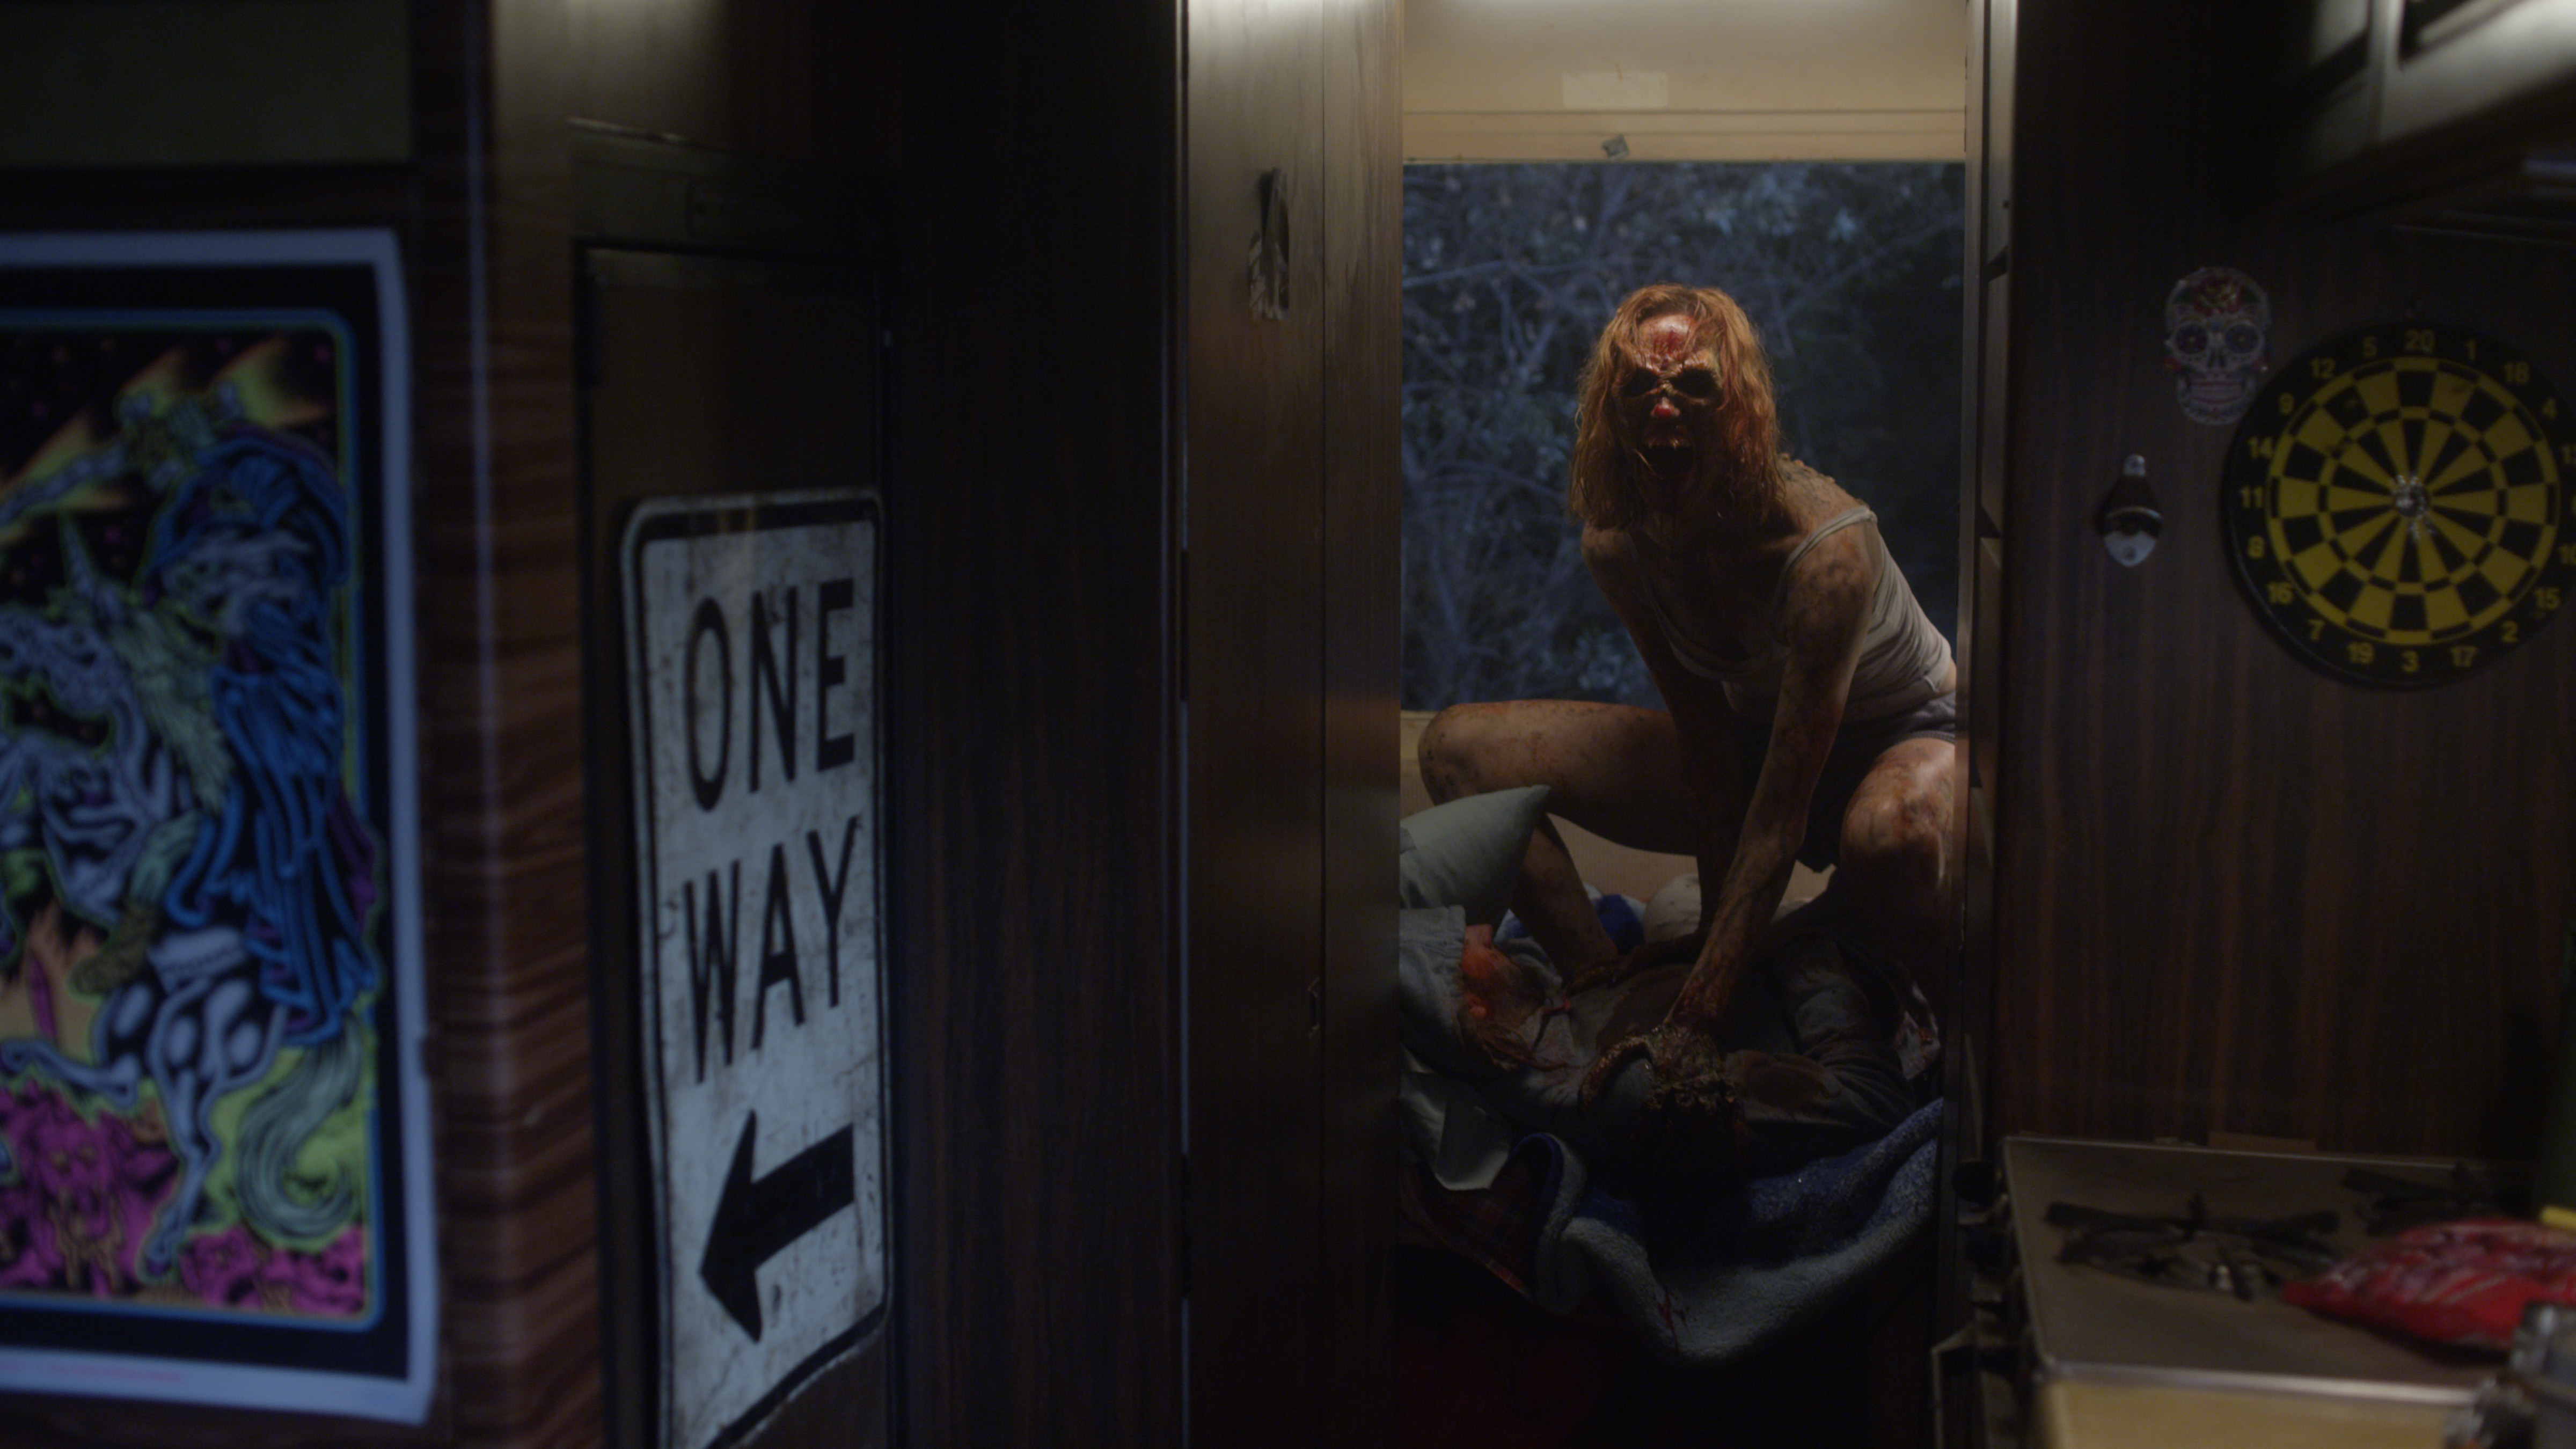 The Horror Anthology 'XX' is Getting a Small Screen Spinoff Series - Bloody Disgusting